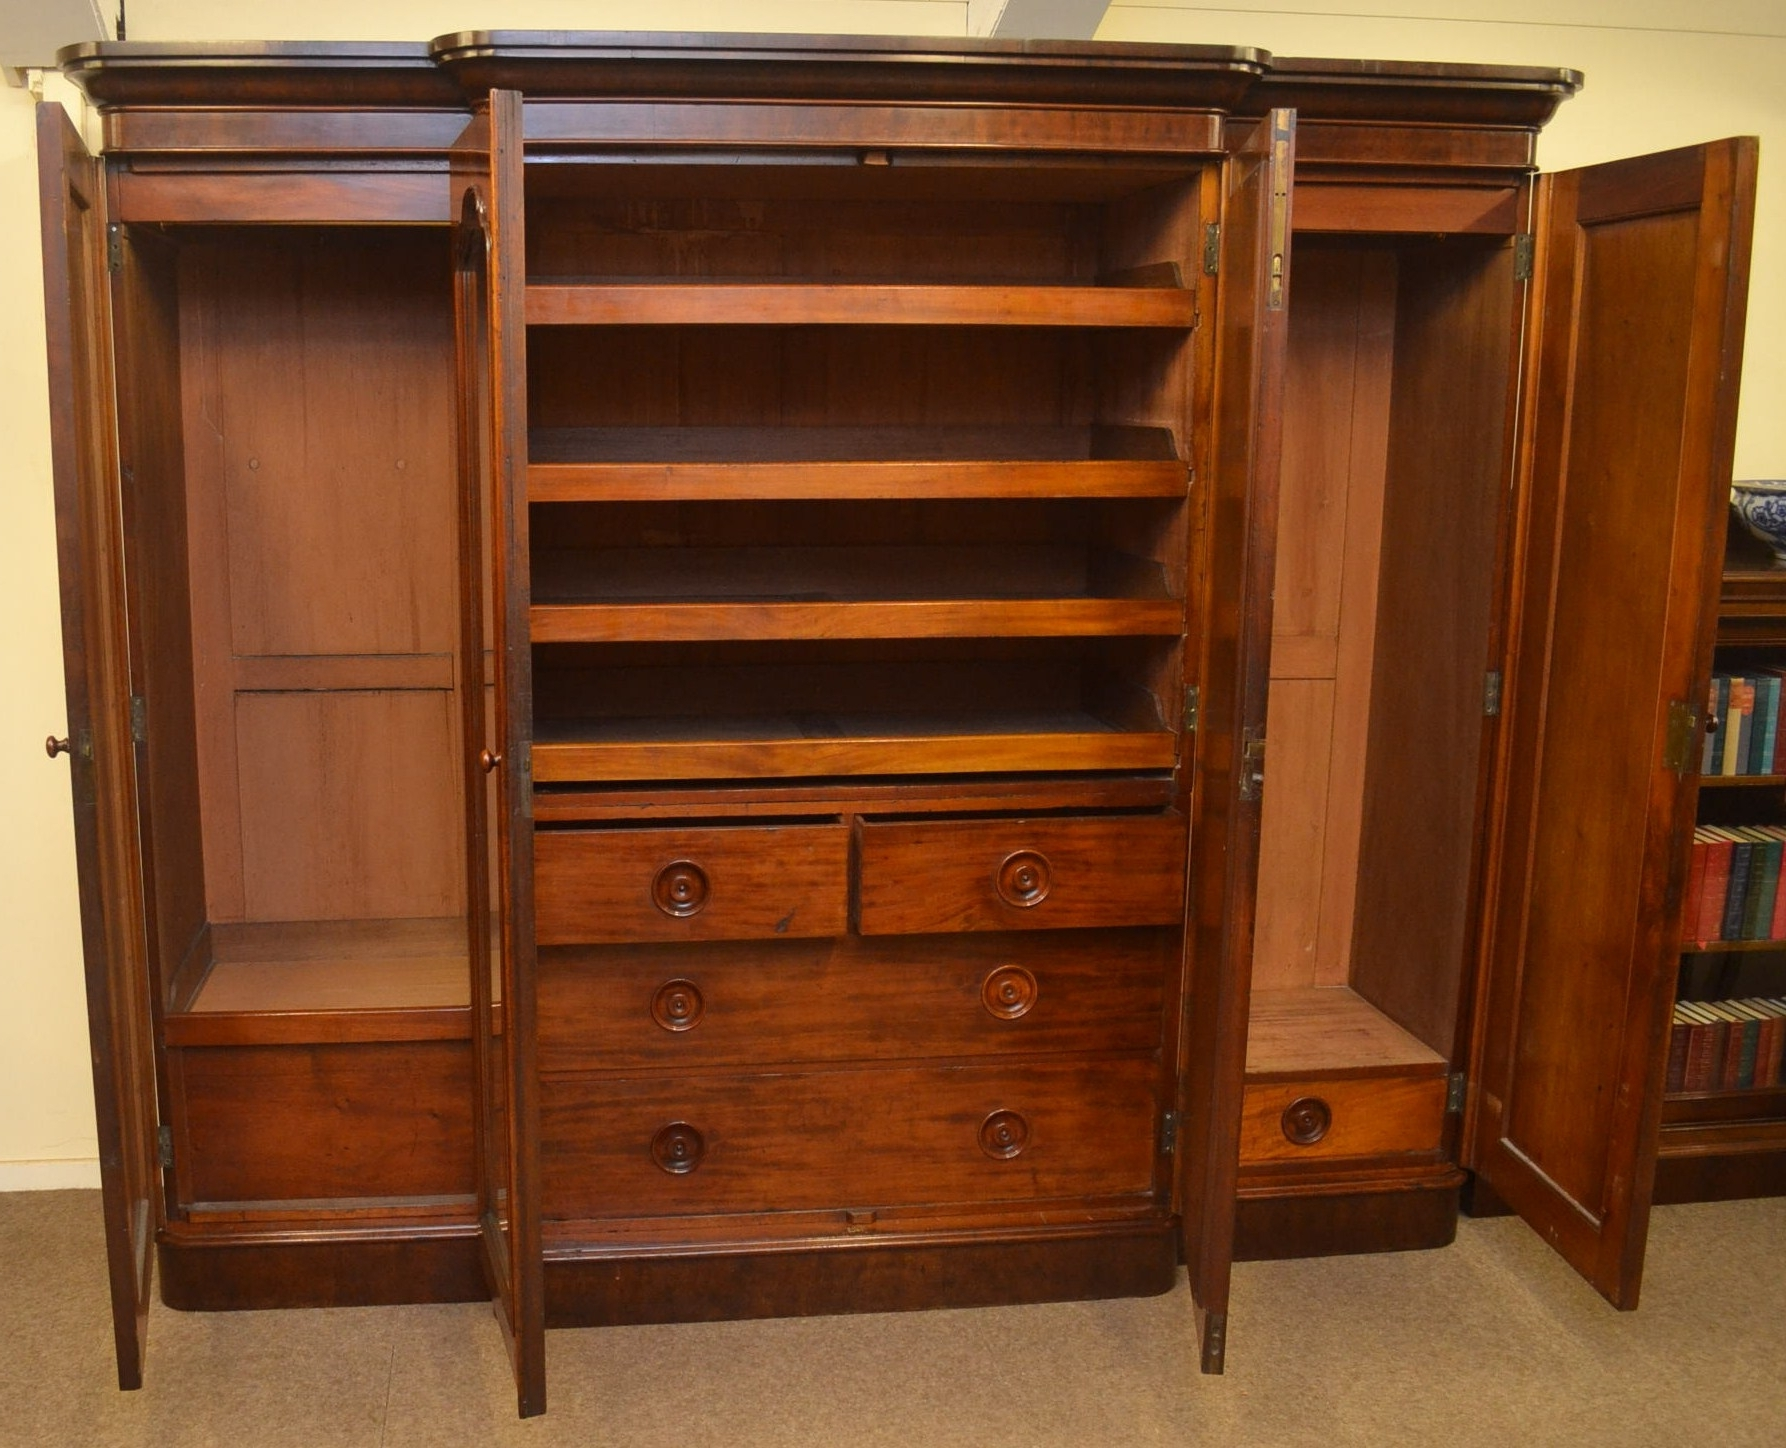 Favorite Breakfront Victorian Mahogany Wardrobe C1870 In From Quayside Antiques Throughout Breakfront Wardrobes (View 9 of 15)